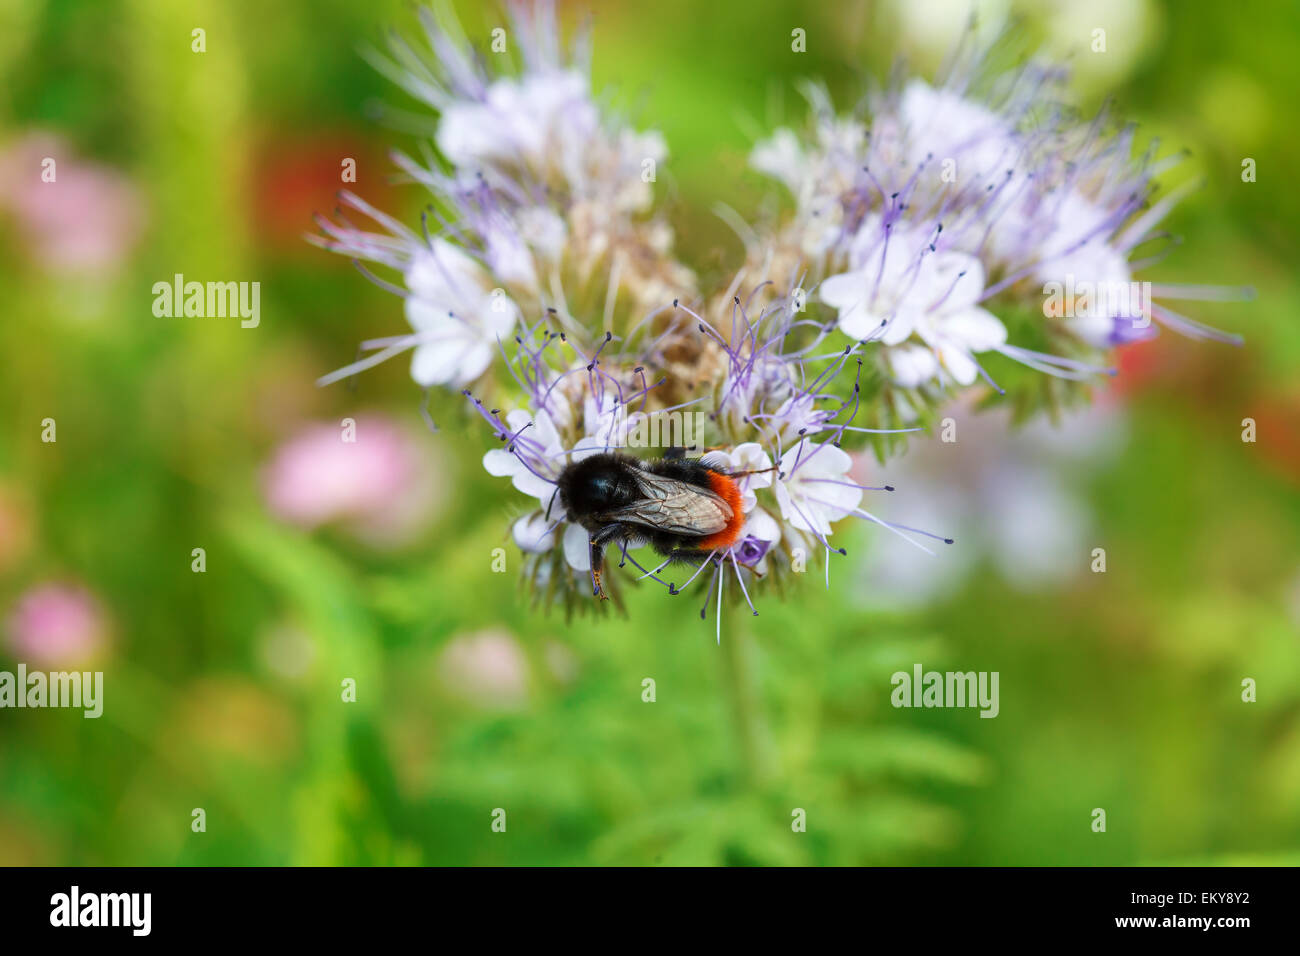 Bee pollinating flower on green meadow, horizontal orientation - Stock Image